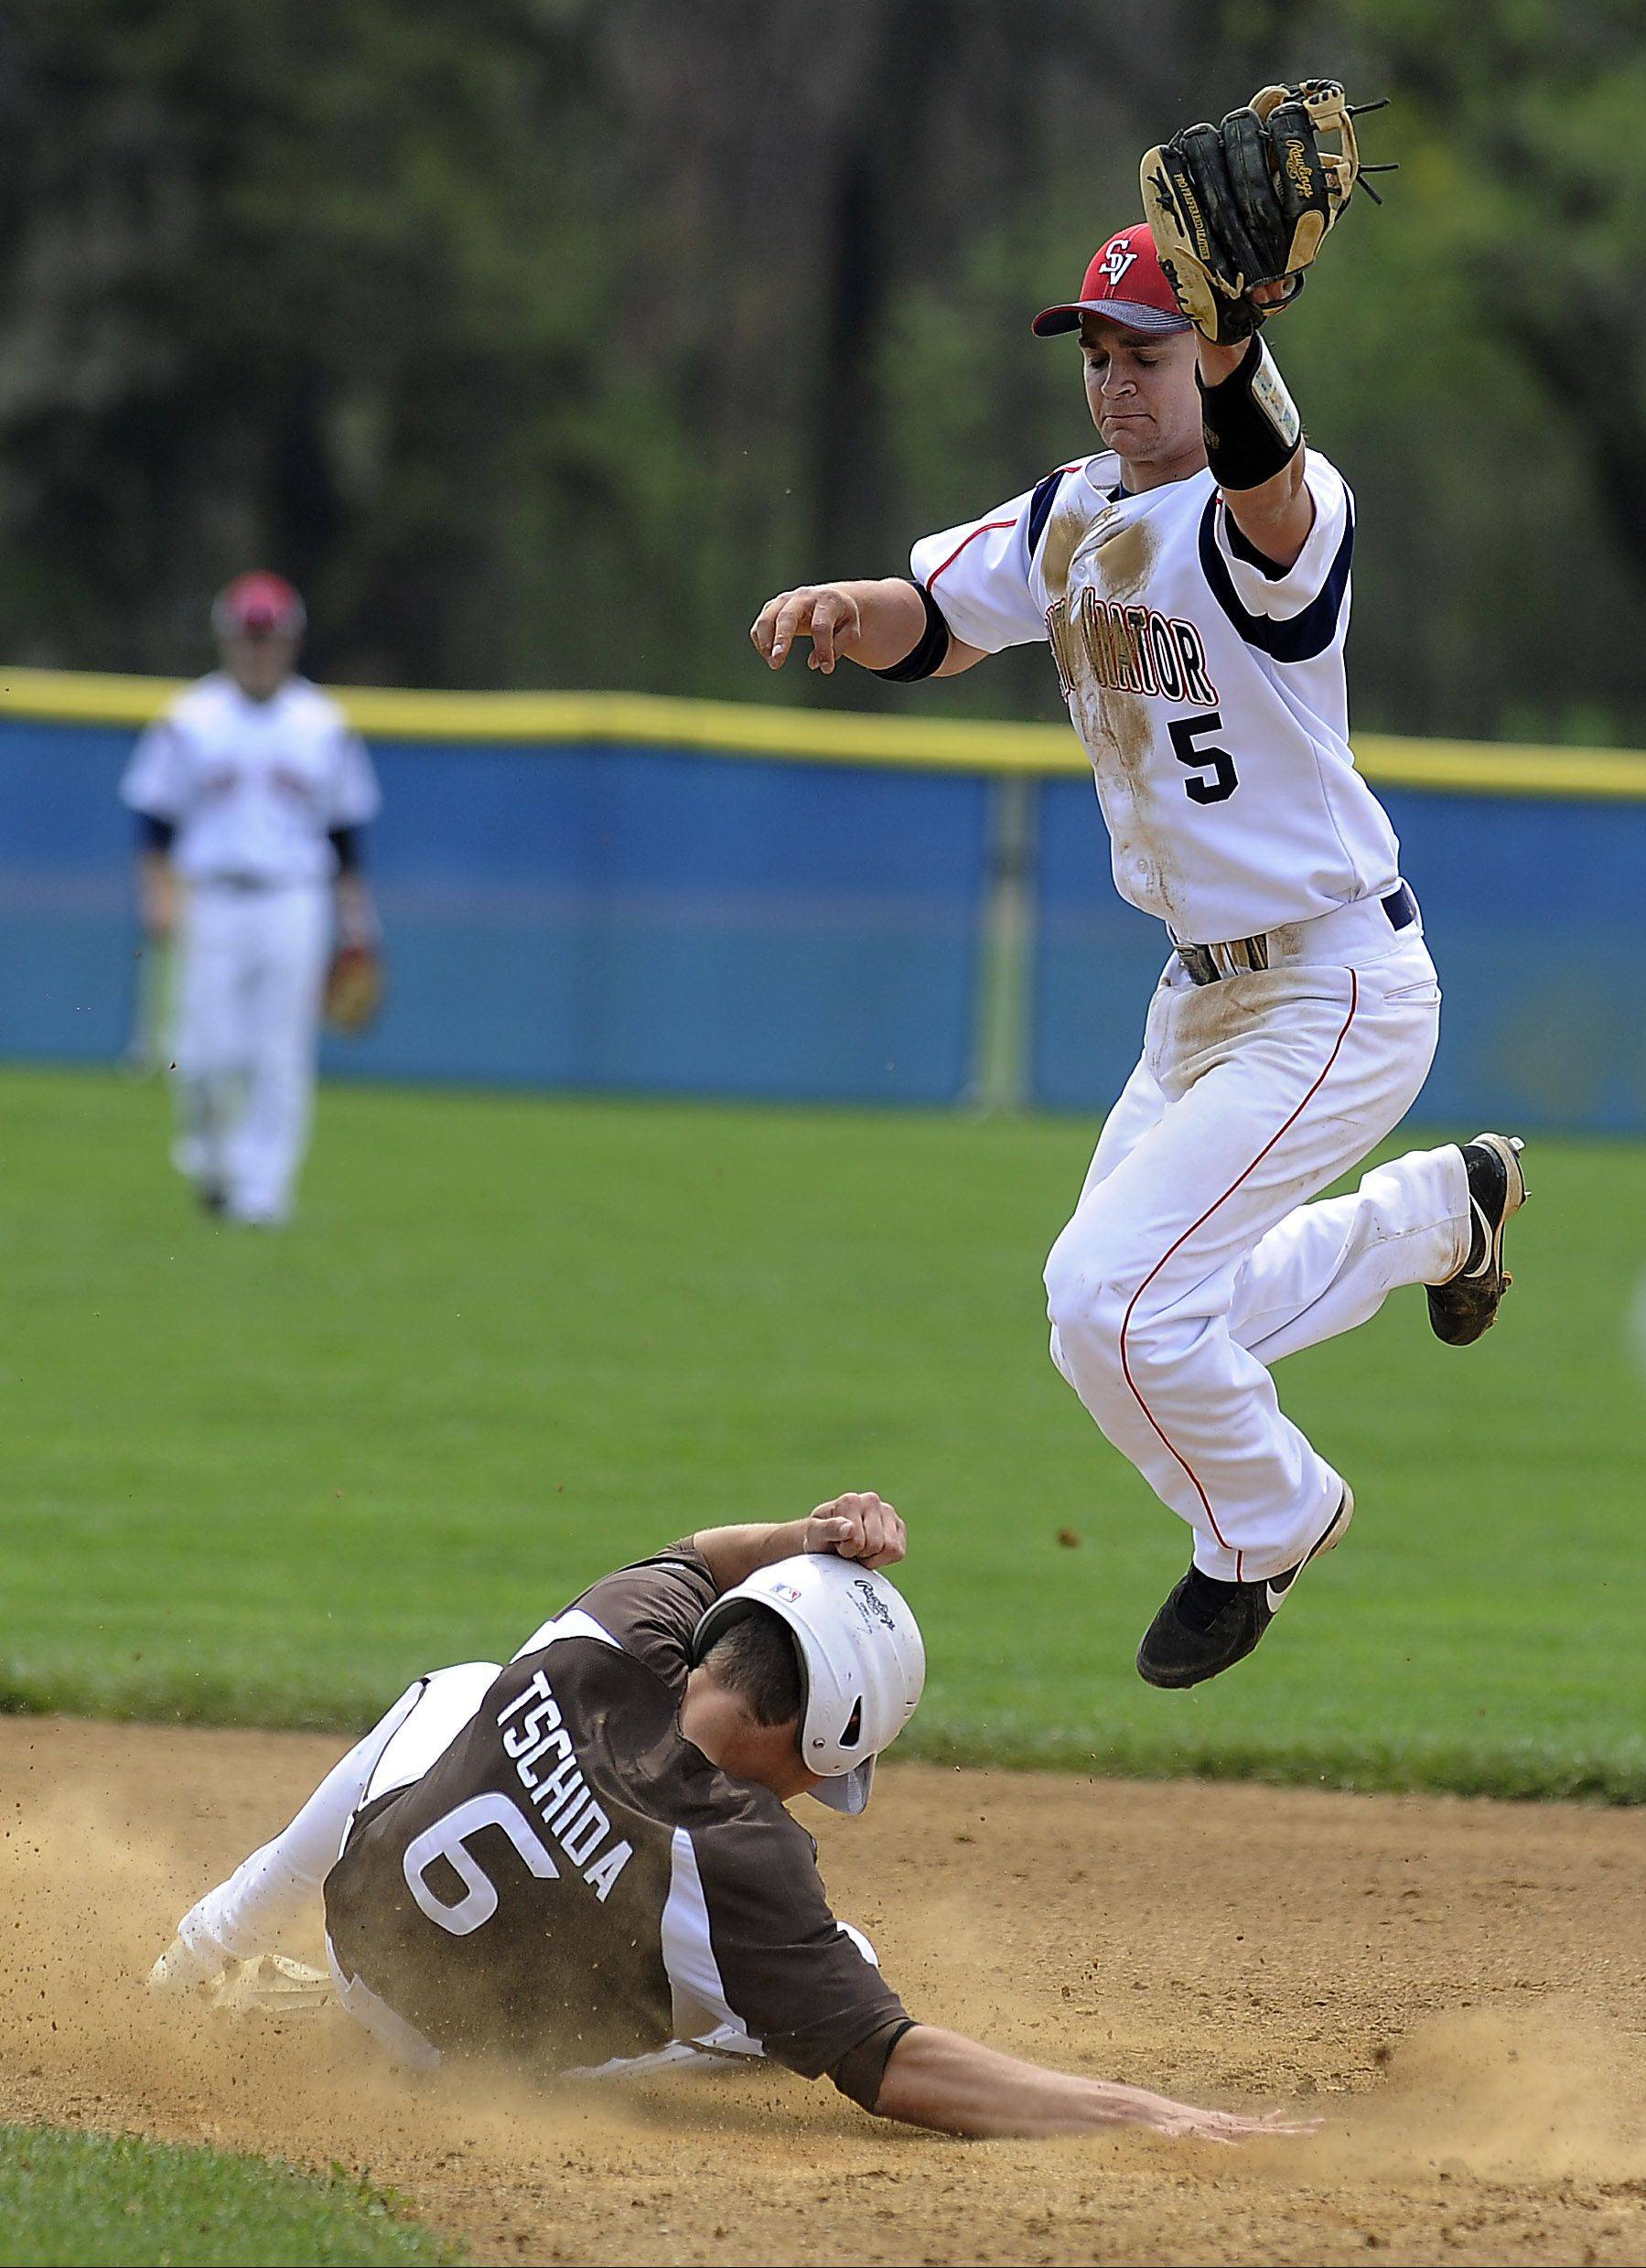 St. Viator's Charlie Meyer is unable to apply the tag at second as Joliet's Chris Tschida slides safely in at St. Viator on Saturday.